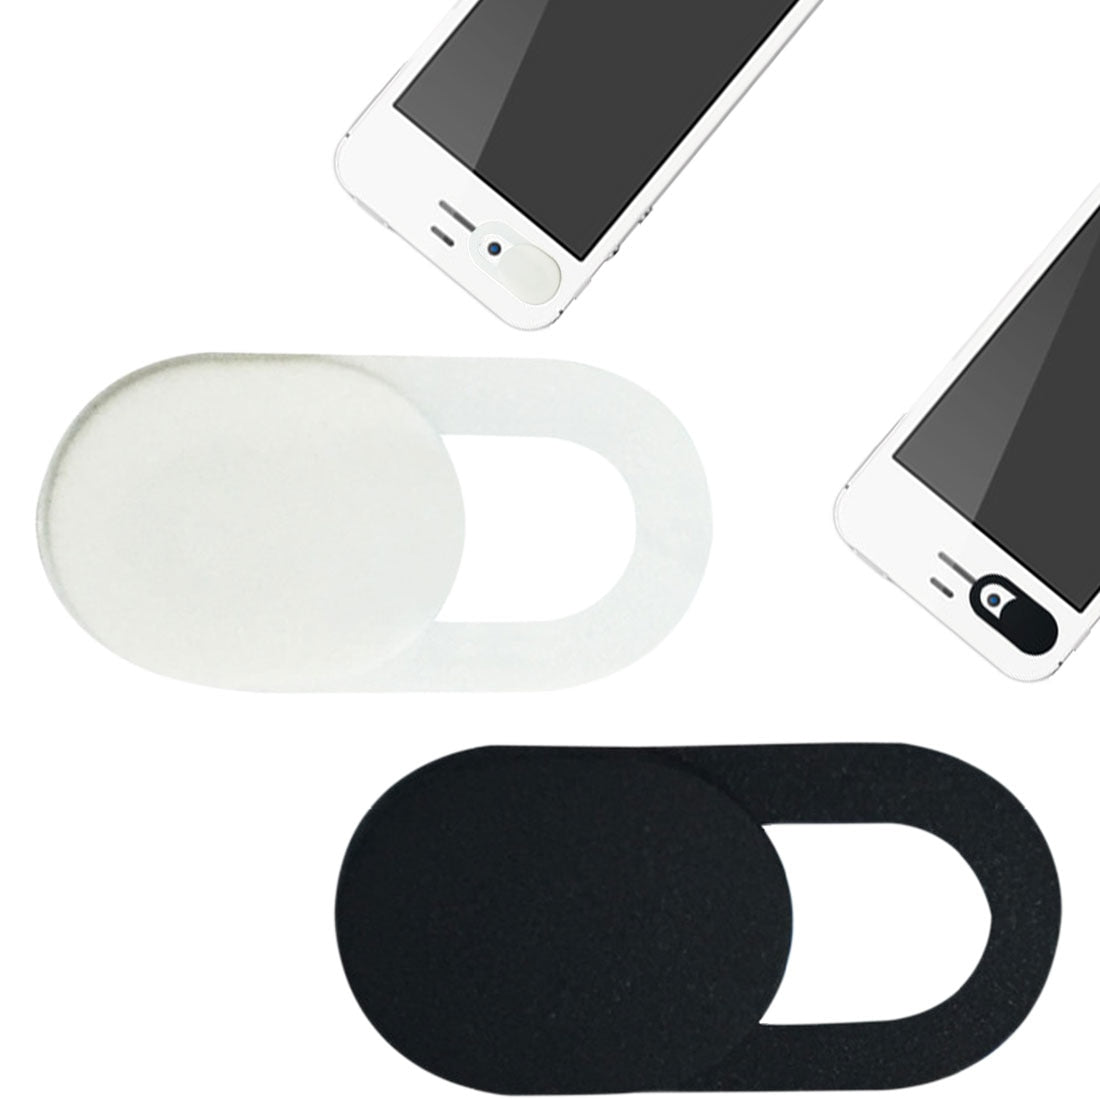 Webcam Privacy Cover For Phones, Tablets, Laptops